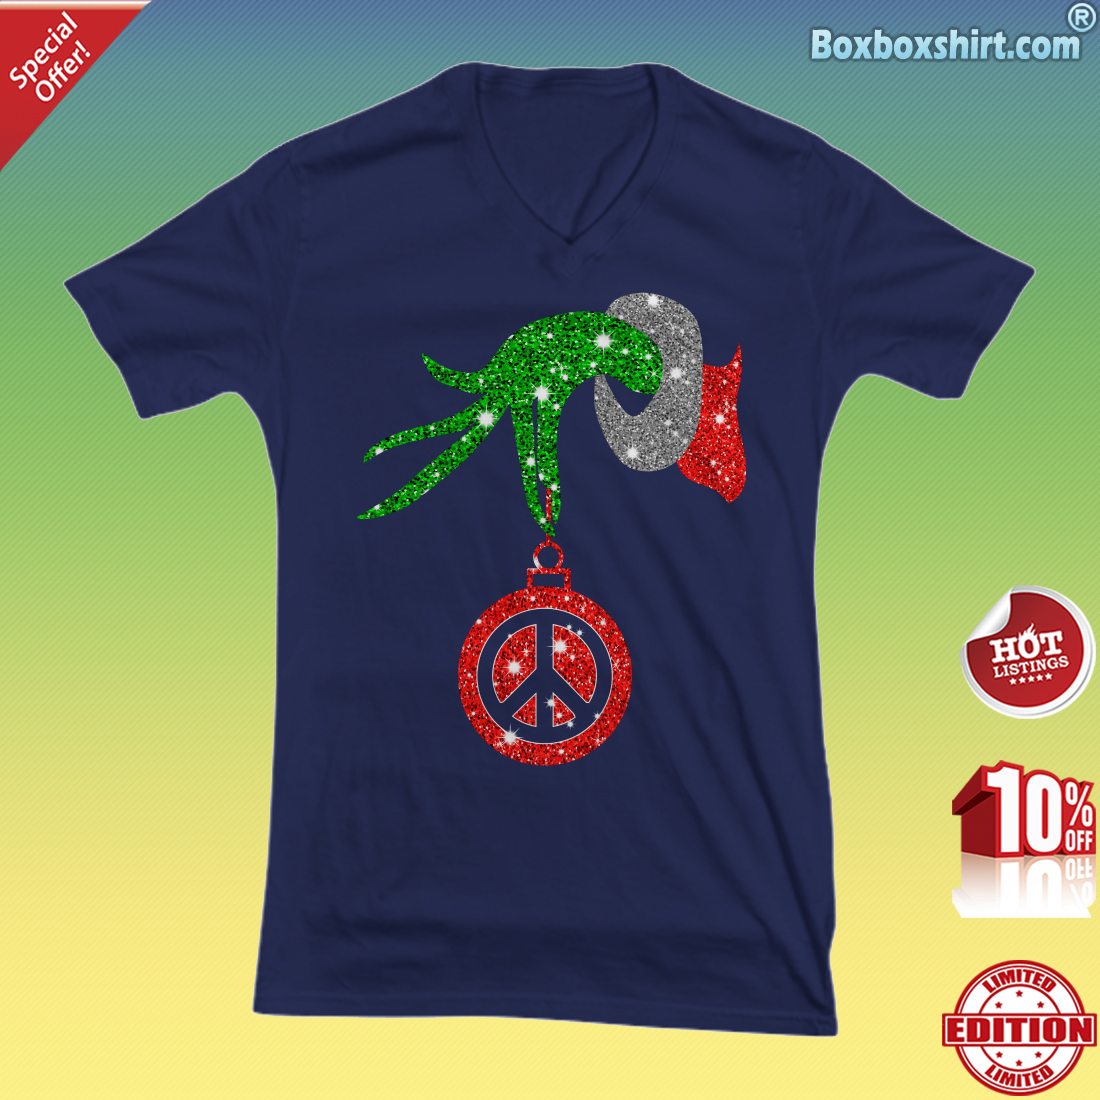 Grinch hand holding peace ornament Christmas V-neck Tee